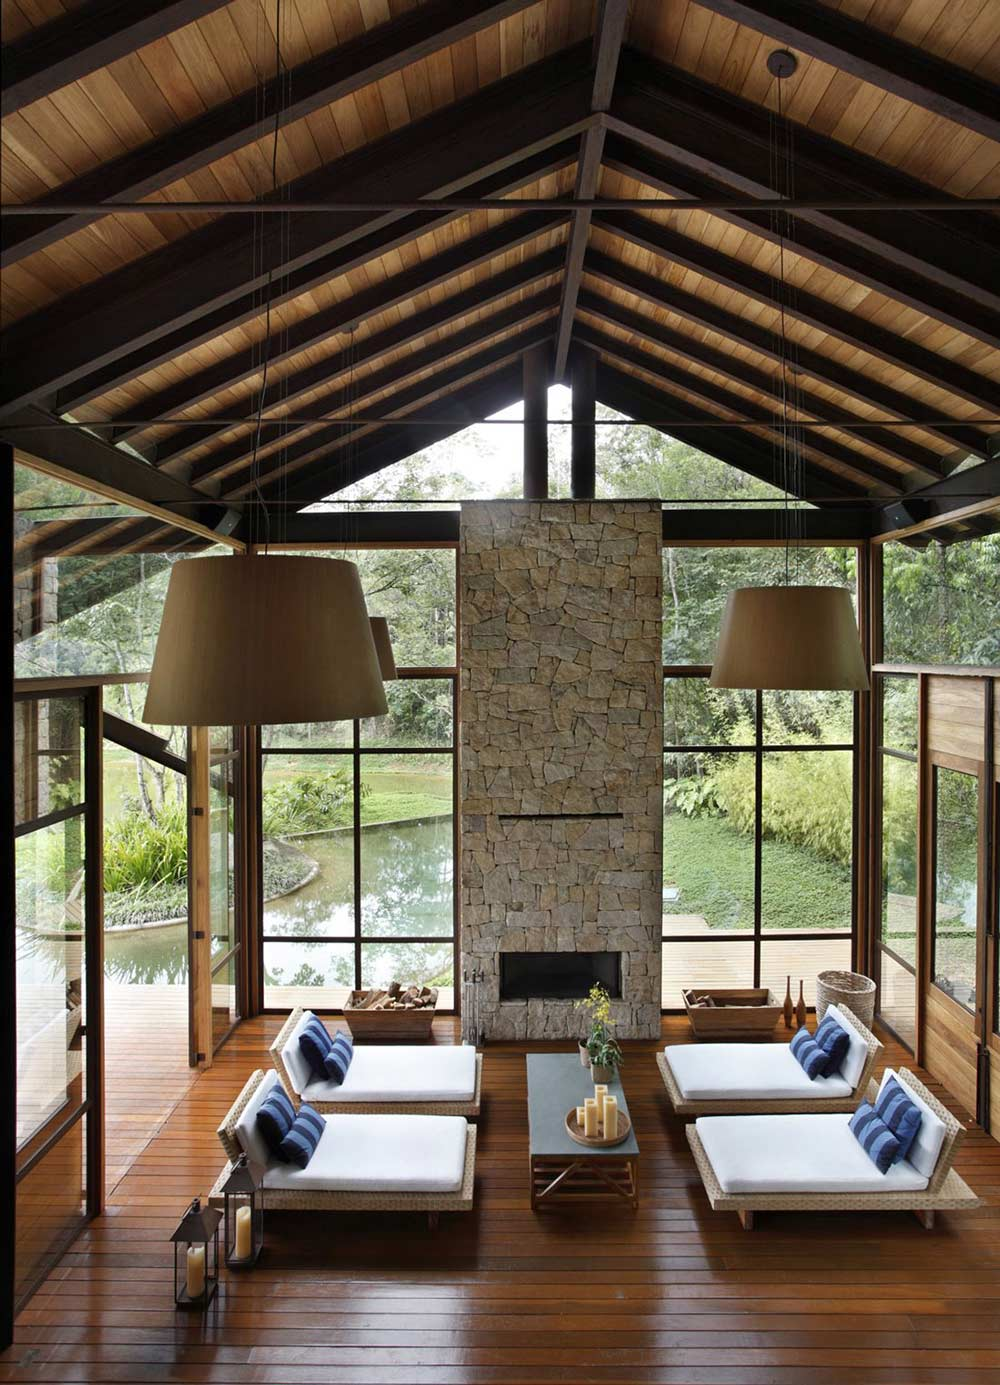 Spa, House in Itaipava, Brazil by Cadas Architecture